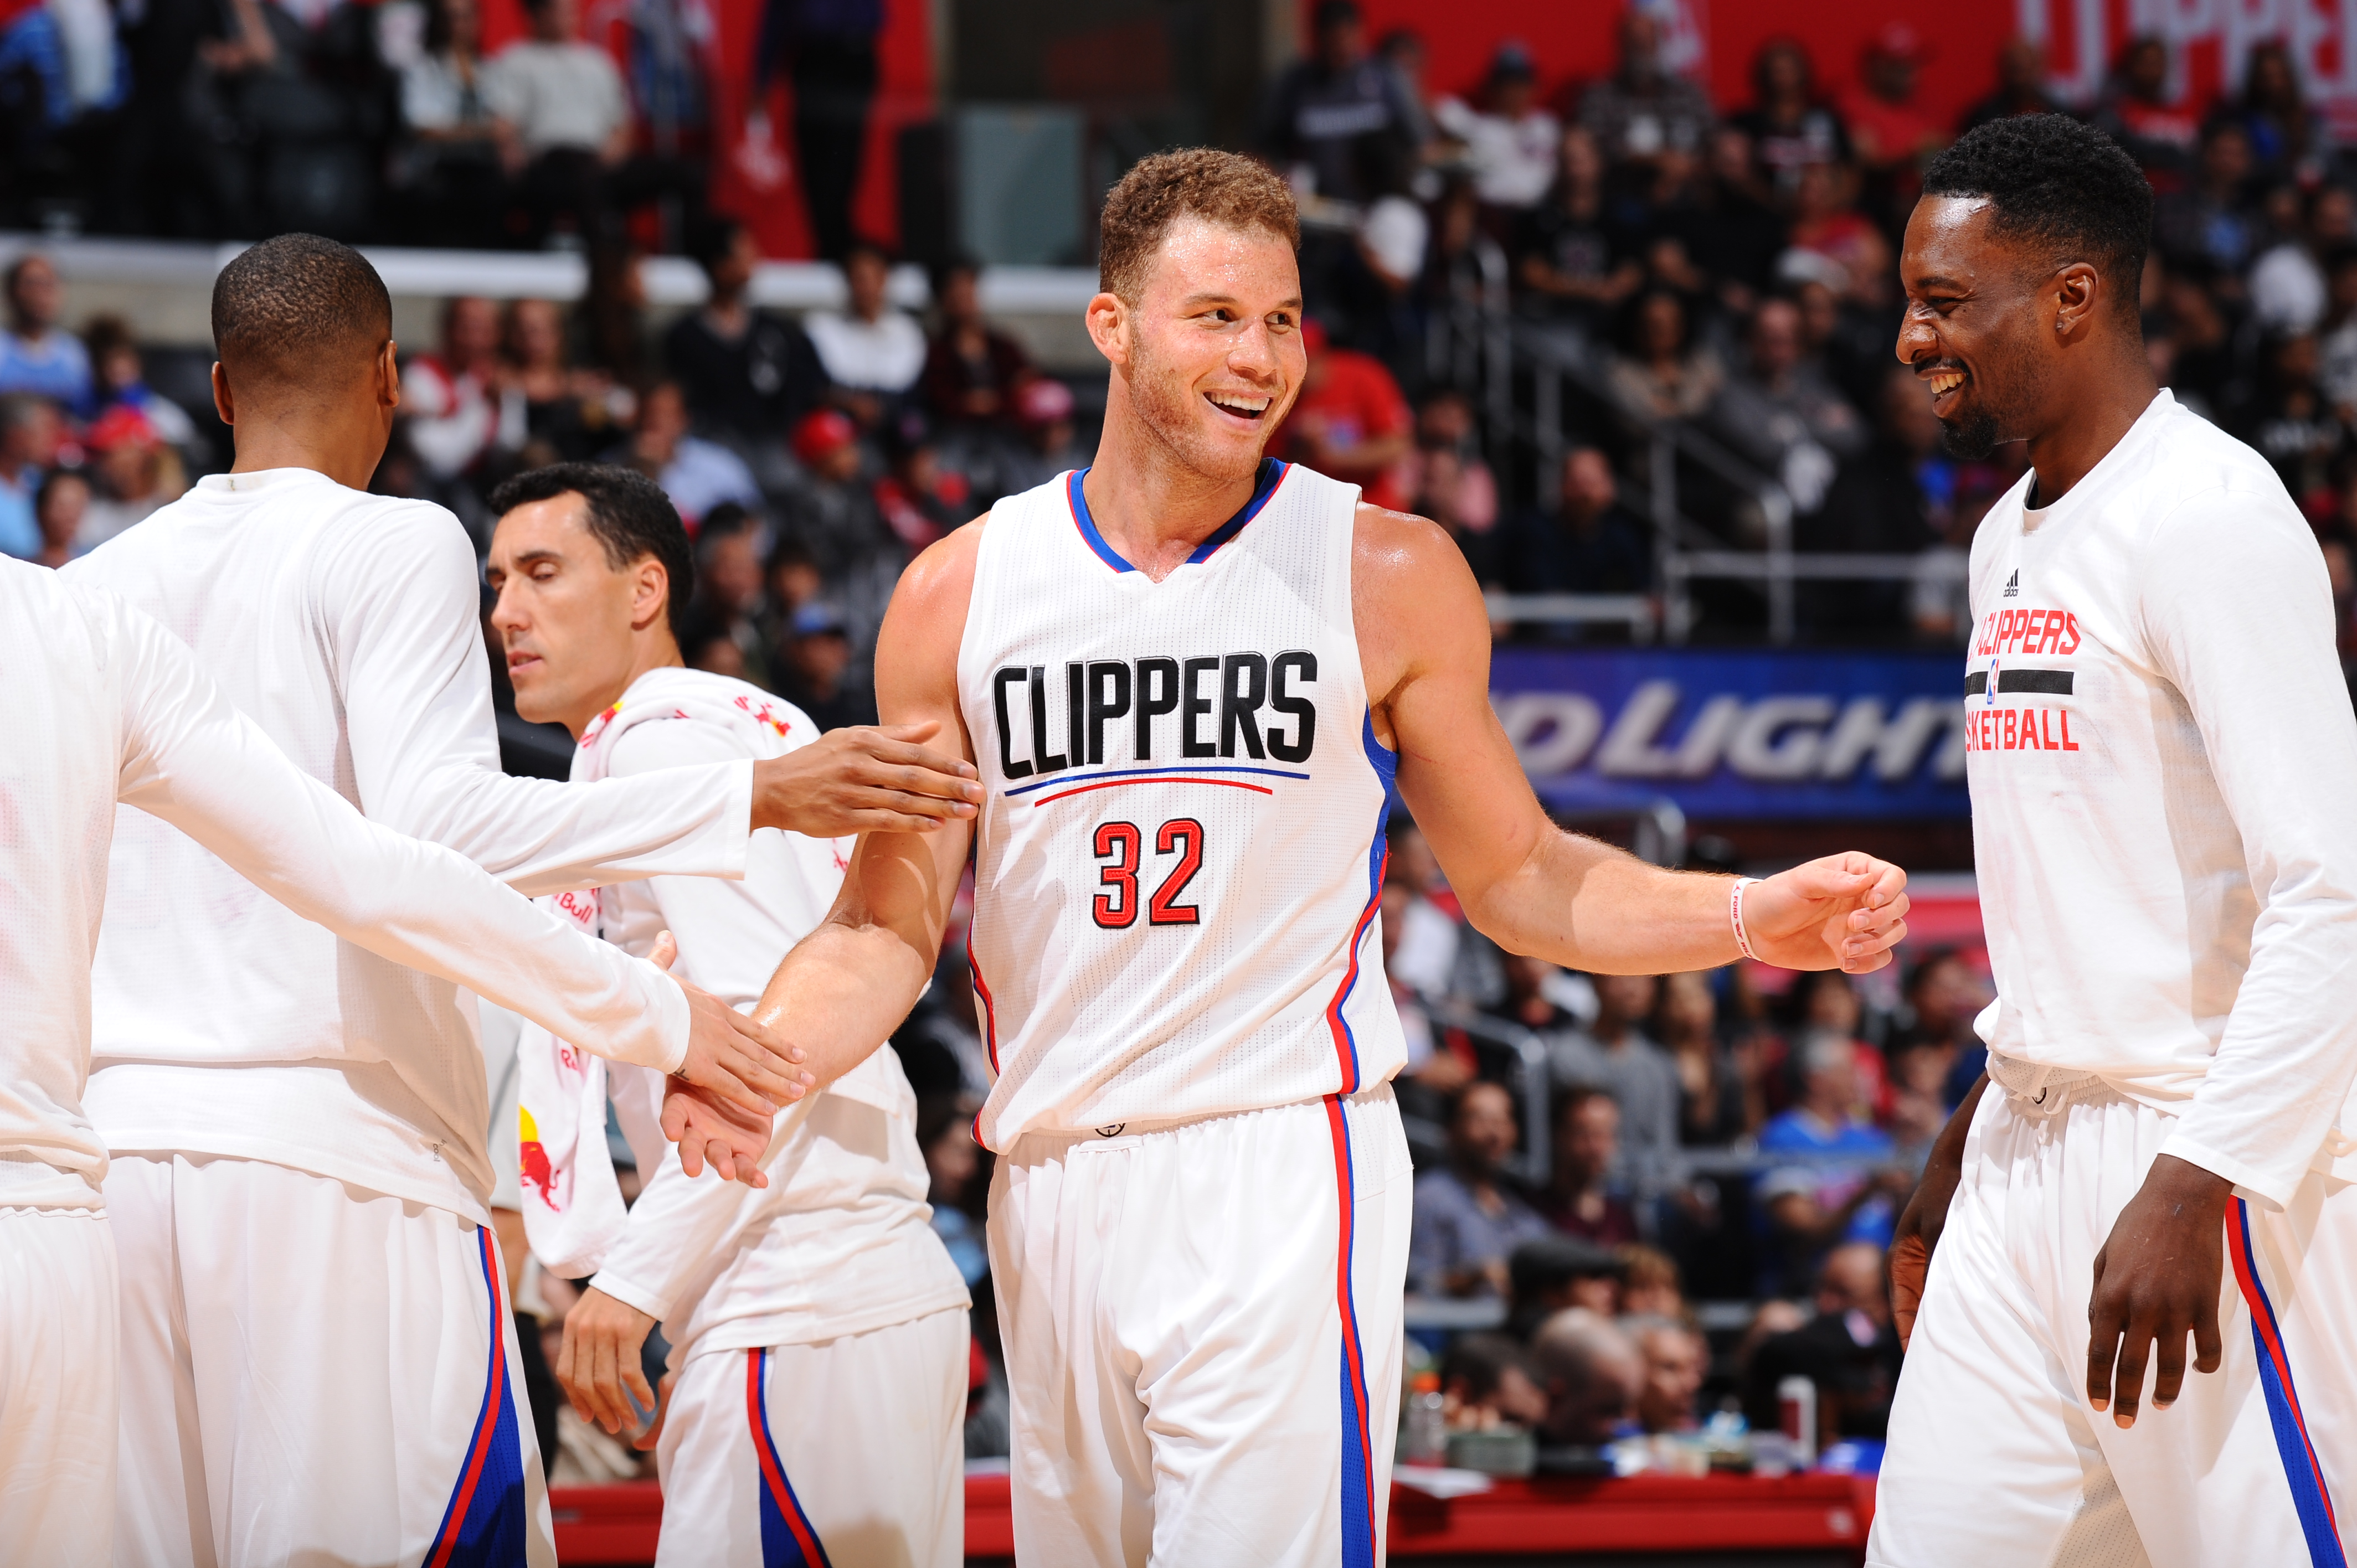 LOS ANGELES, CA  - APRIL 10: Blake Griffin #32 of the Los Angeles Clippers during the game against the Dallas Mavericks on April 10, 2016 at STAPLES Center in Los Angeles, California. (Photo by Juan Ocampo/NBAE via Getty Images)